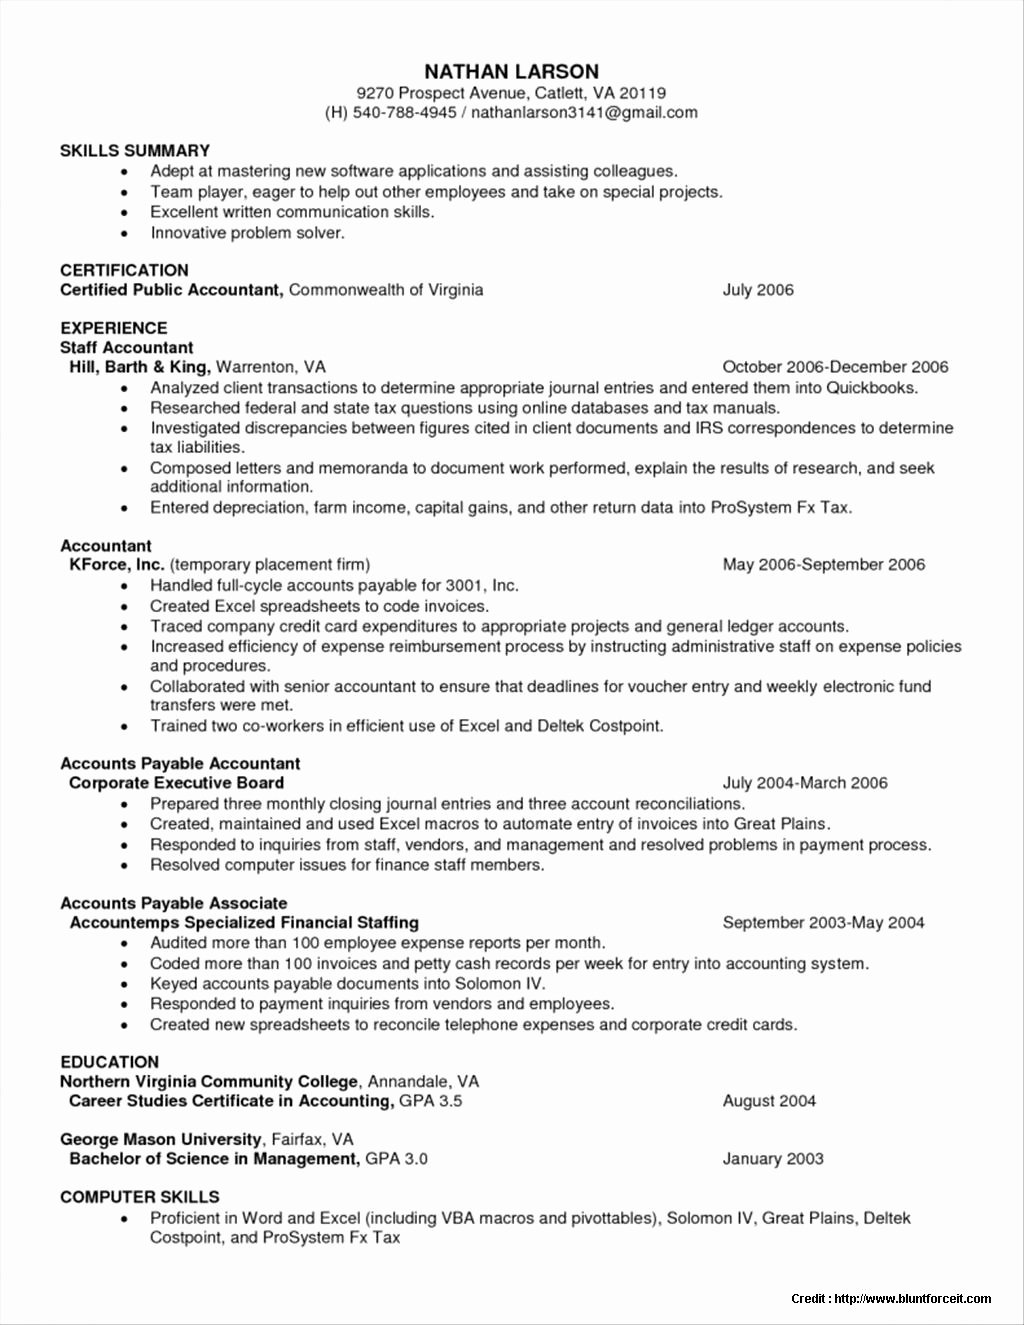 100 Free Resume Templates Download Resume Resume